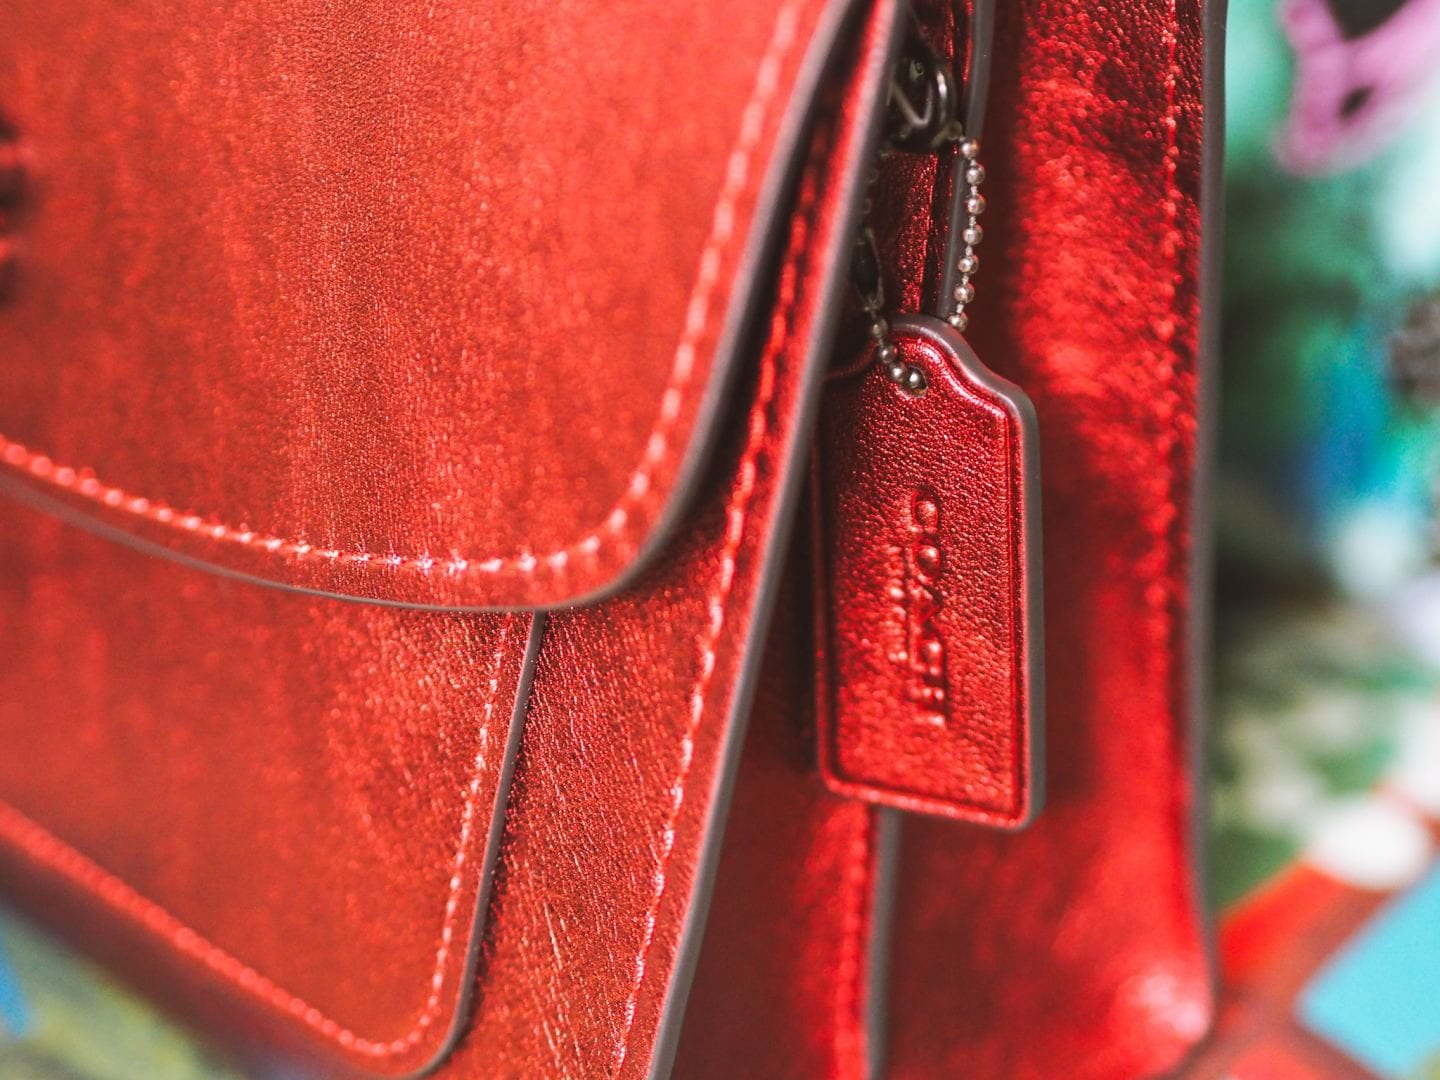 coach parker bag metallic leather red handbag review side view